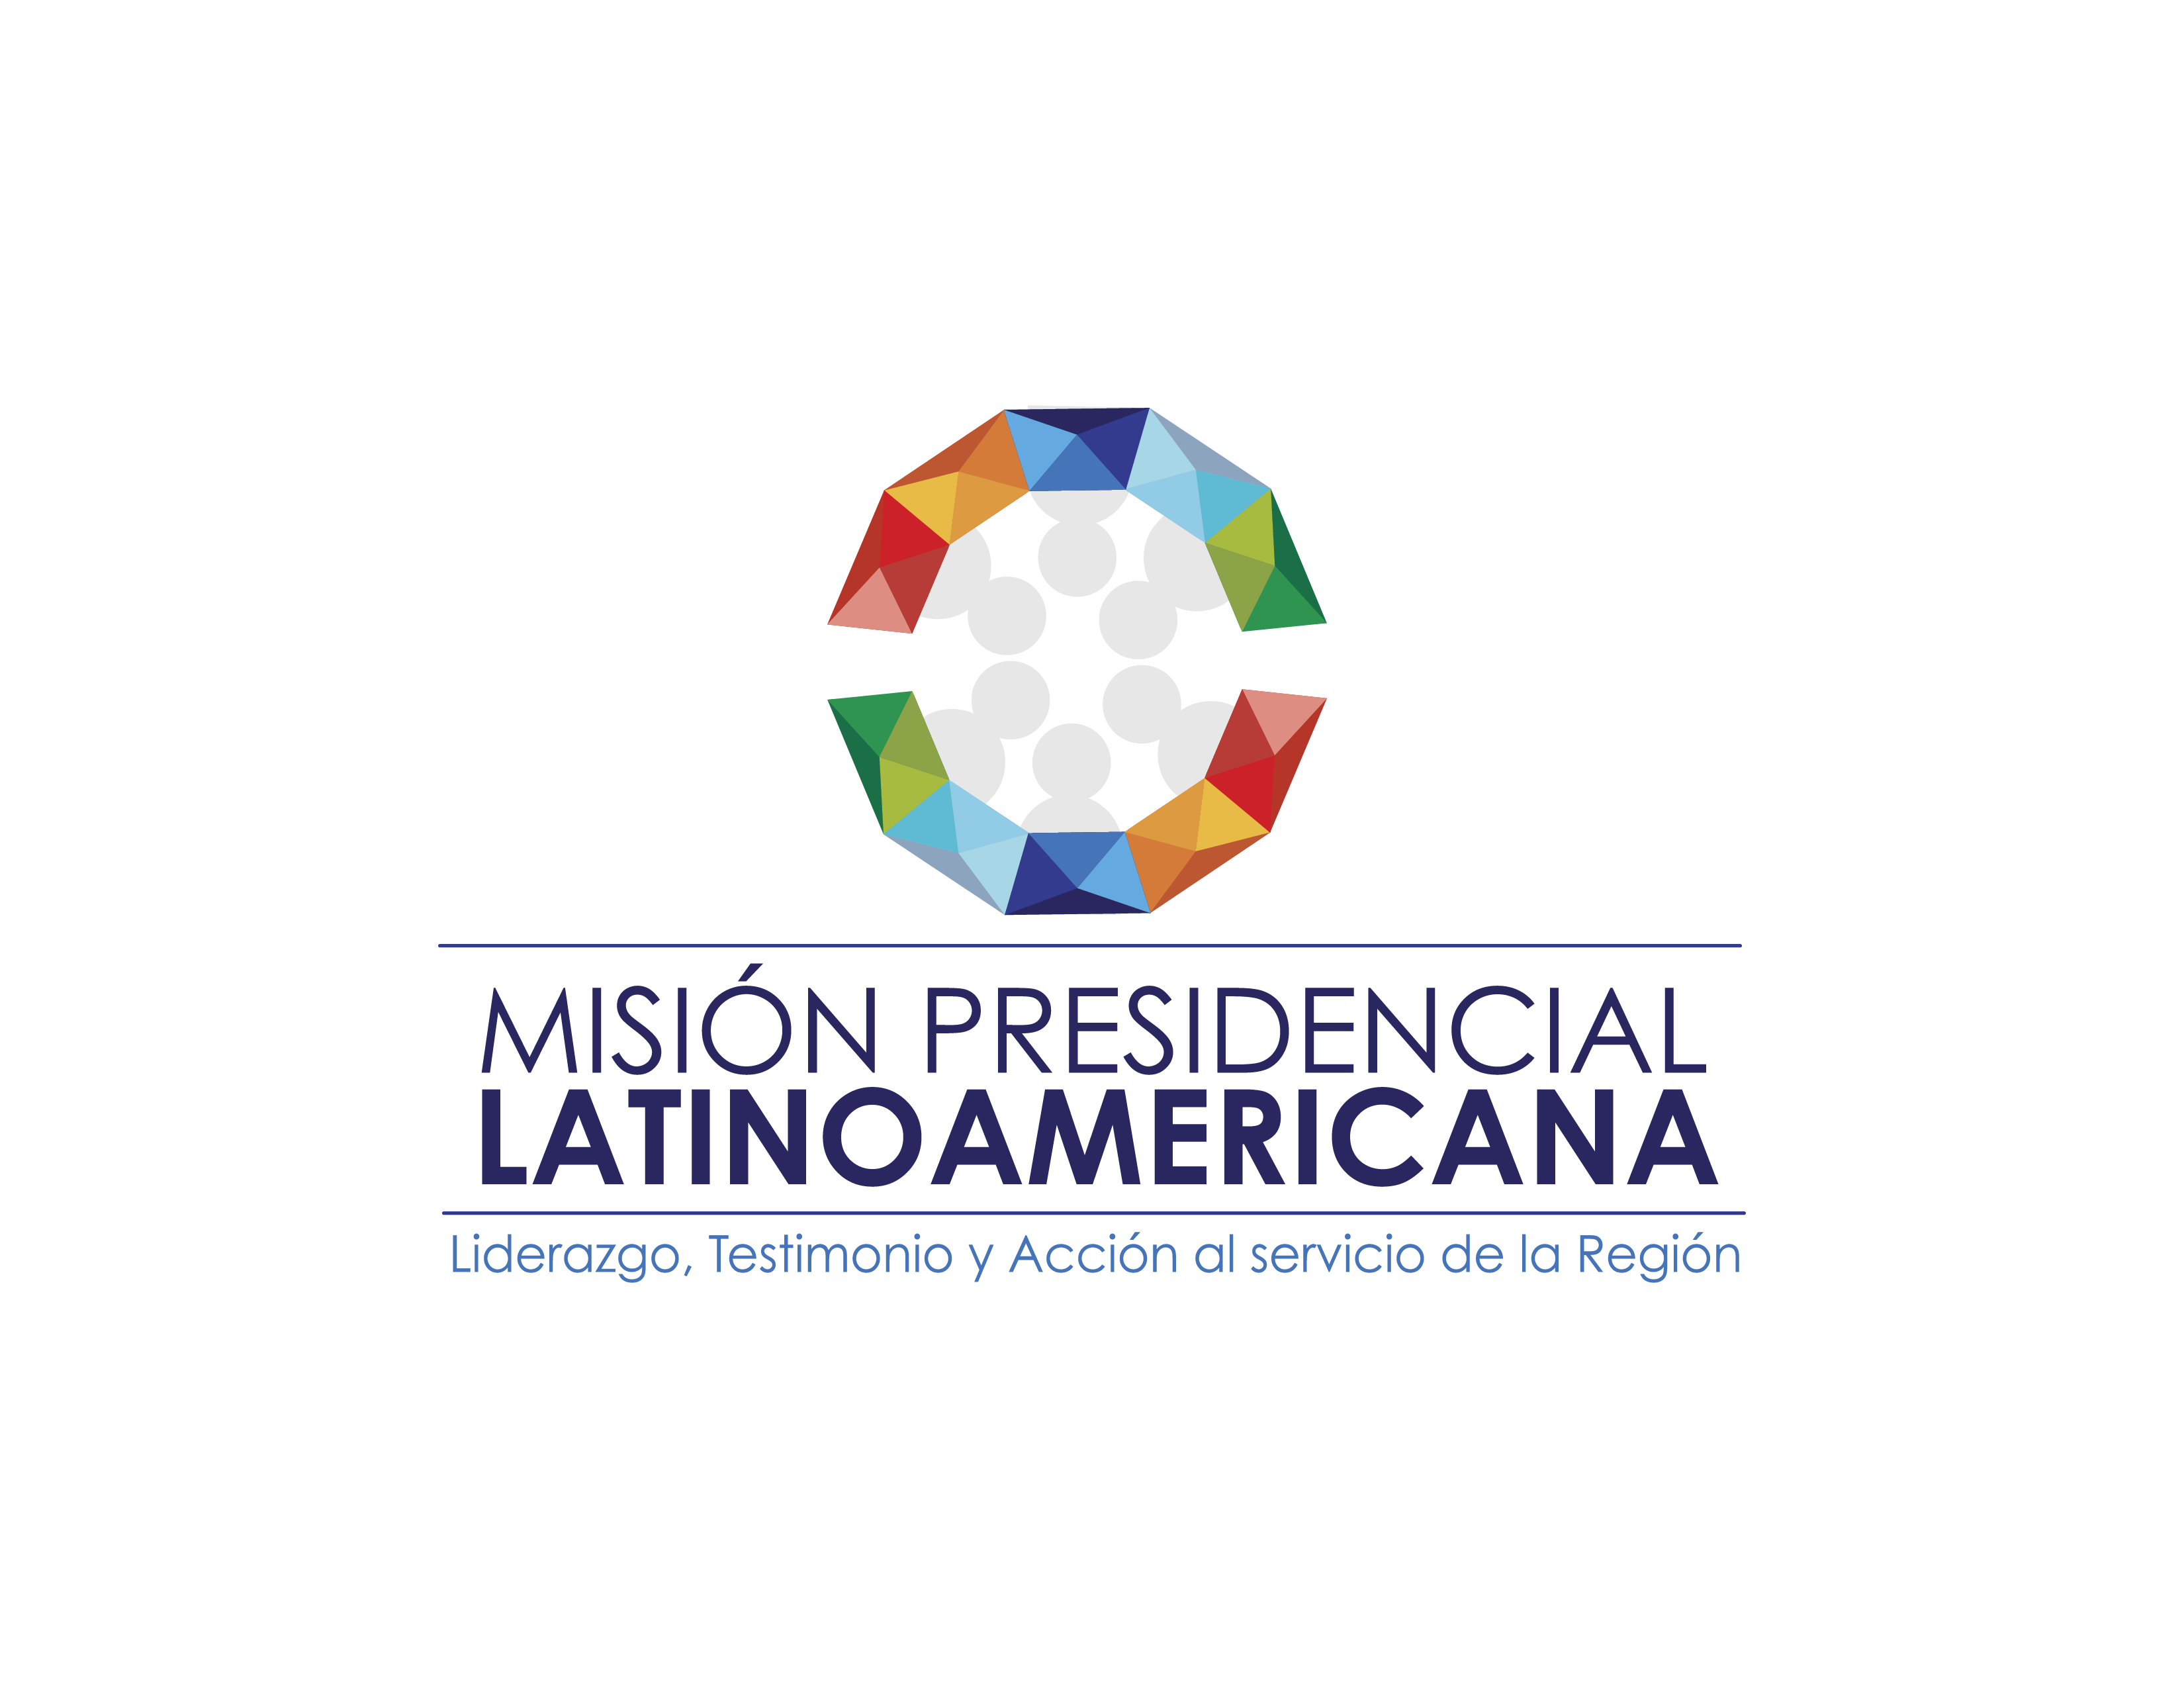 MisionPresidencial.png